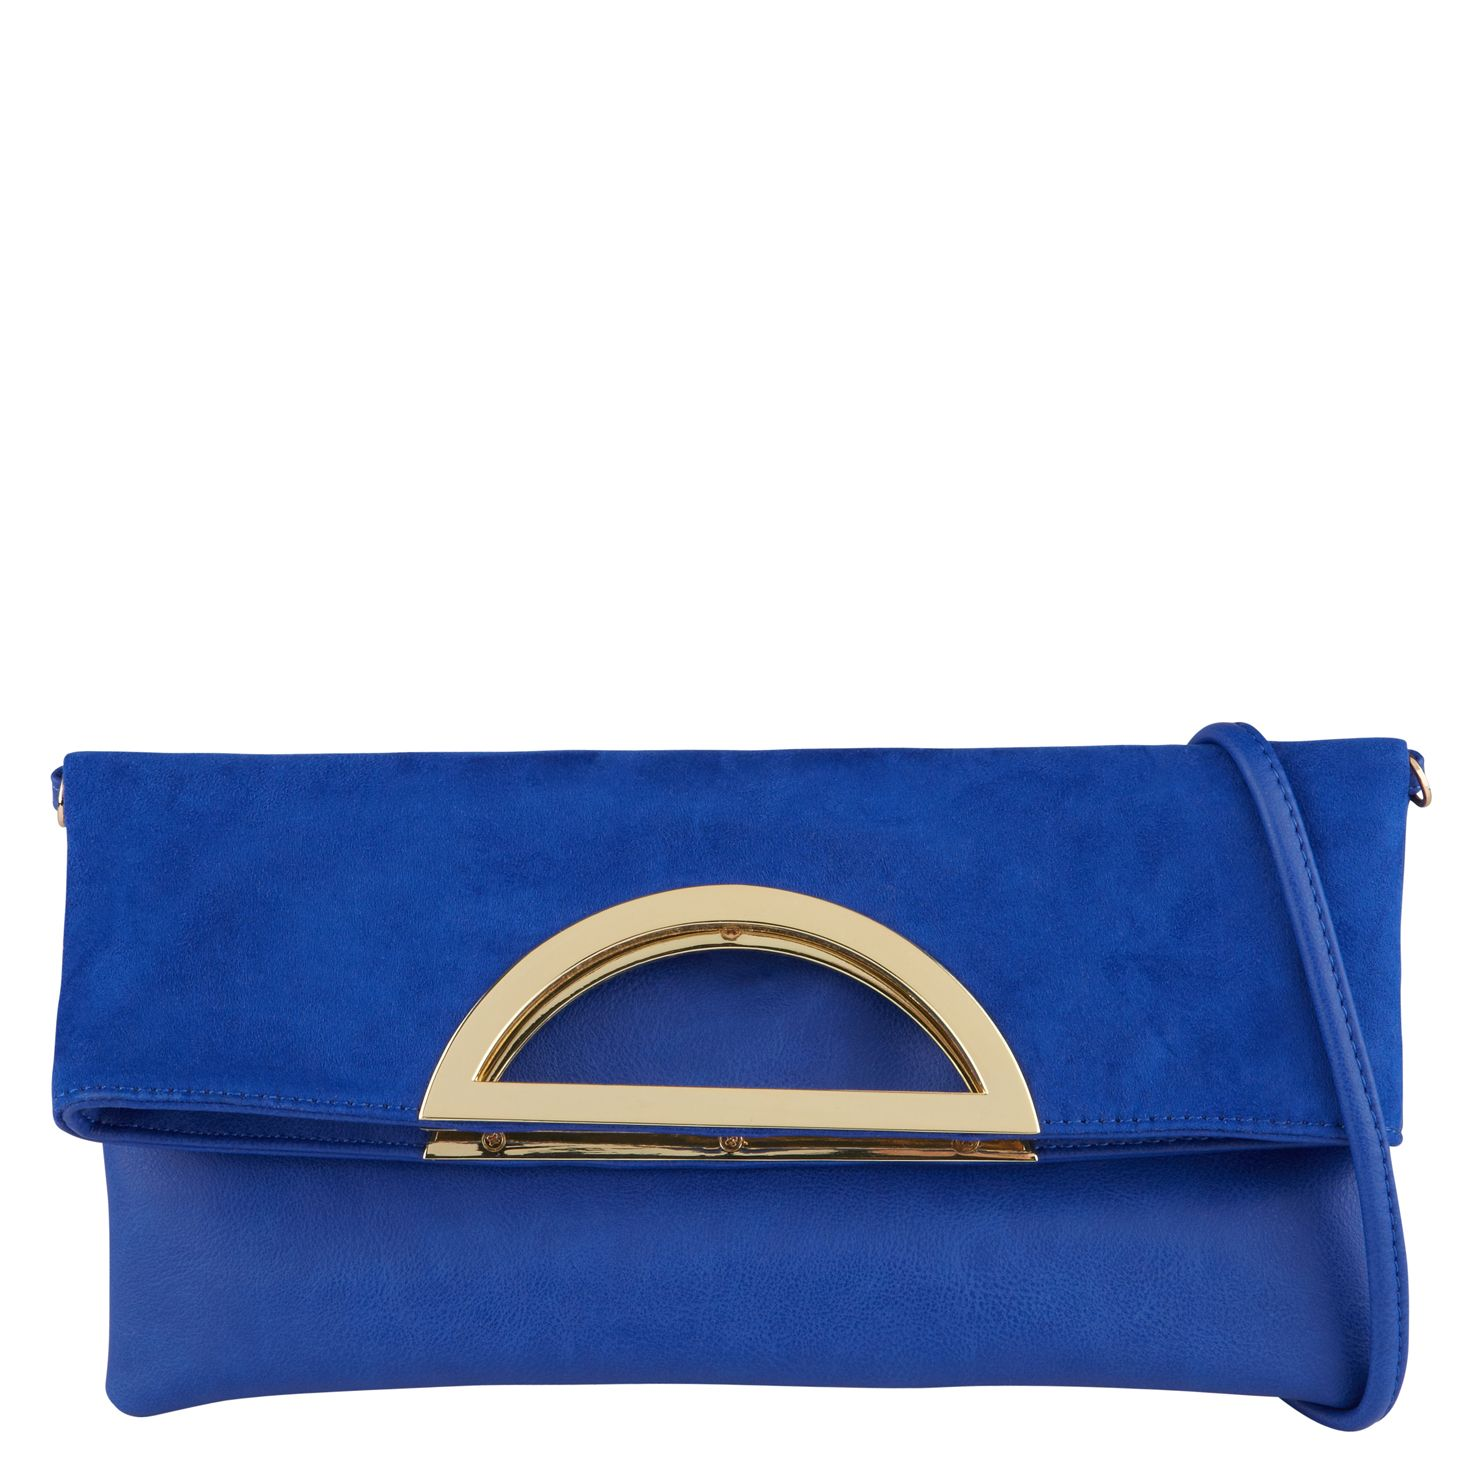 Seikola clutch shoulder bag